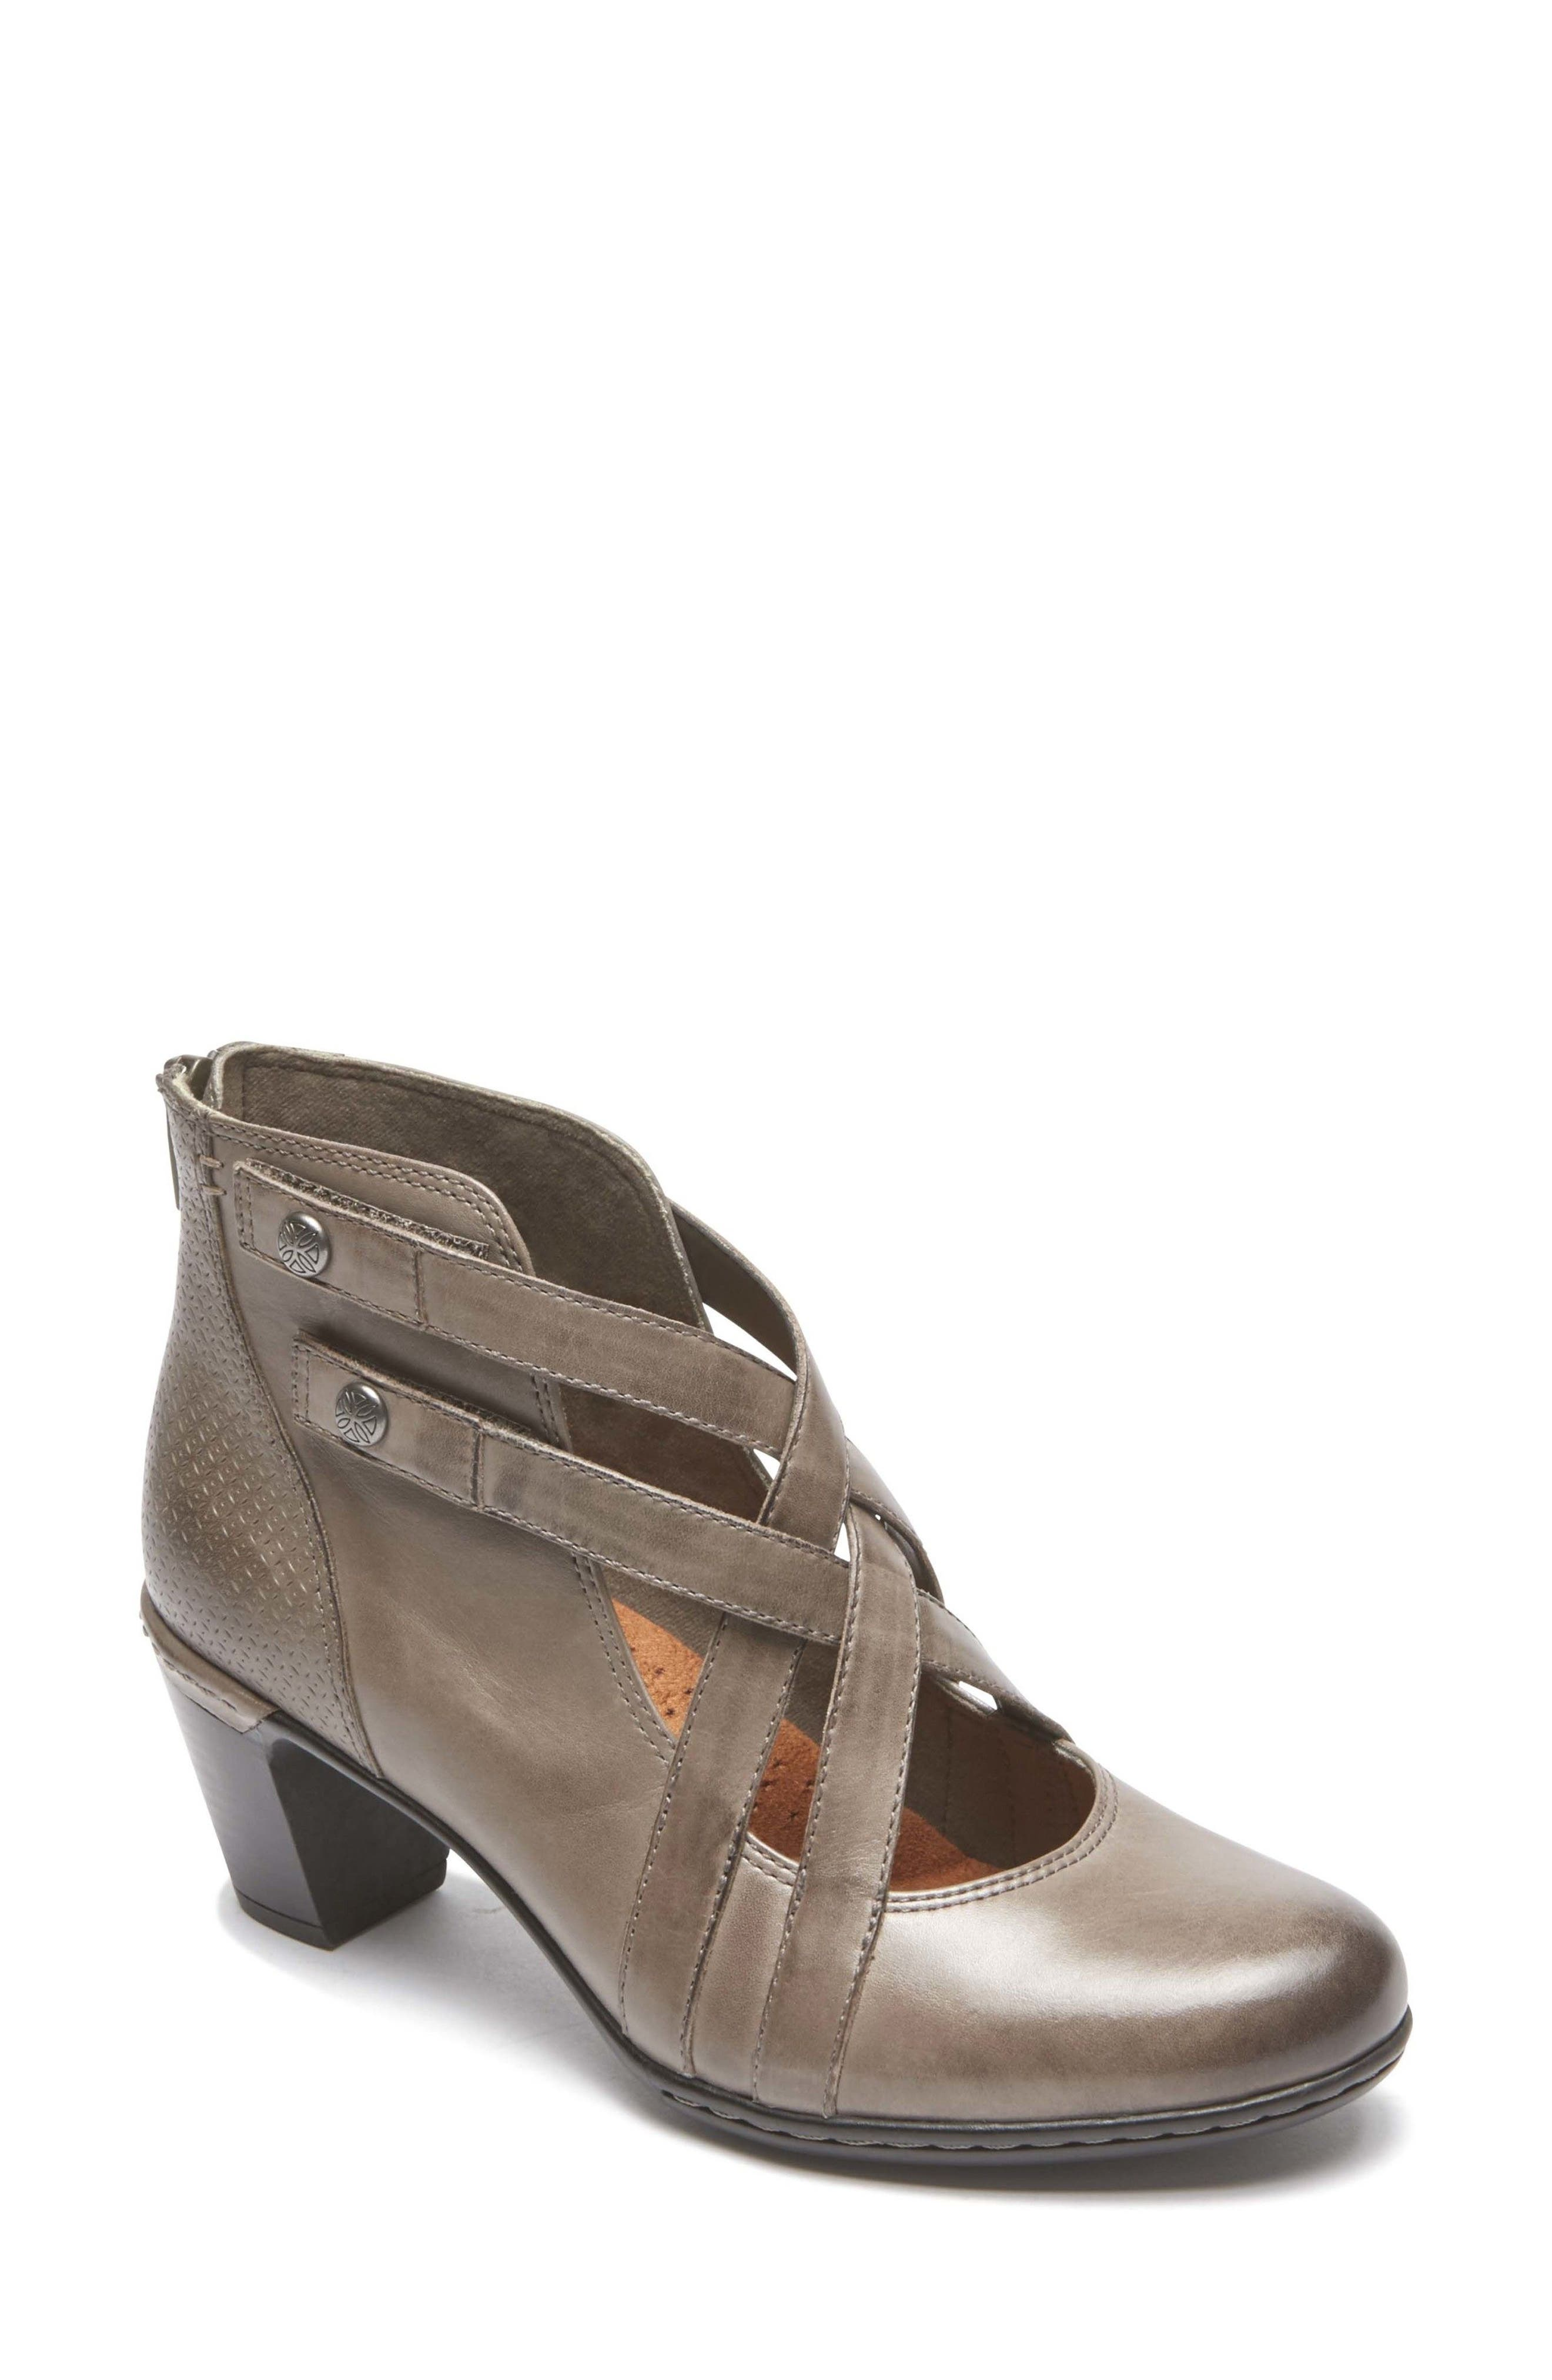 ROCKPORT COBB HILL Rashel X-Strap Pump, Main, color, STORMY GREY LEATHER